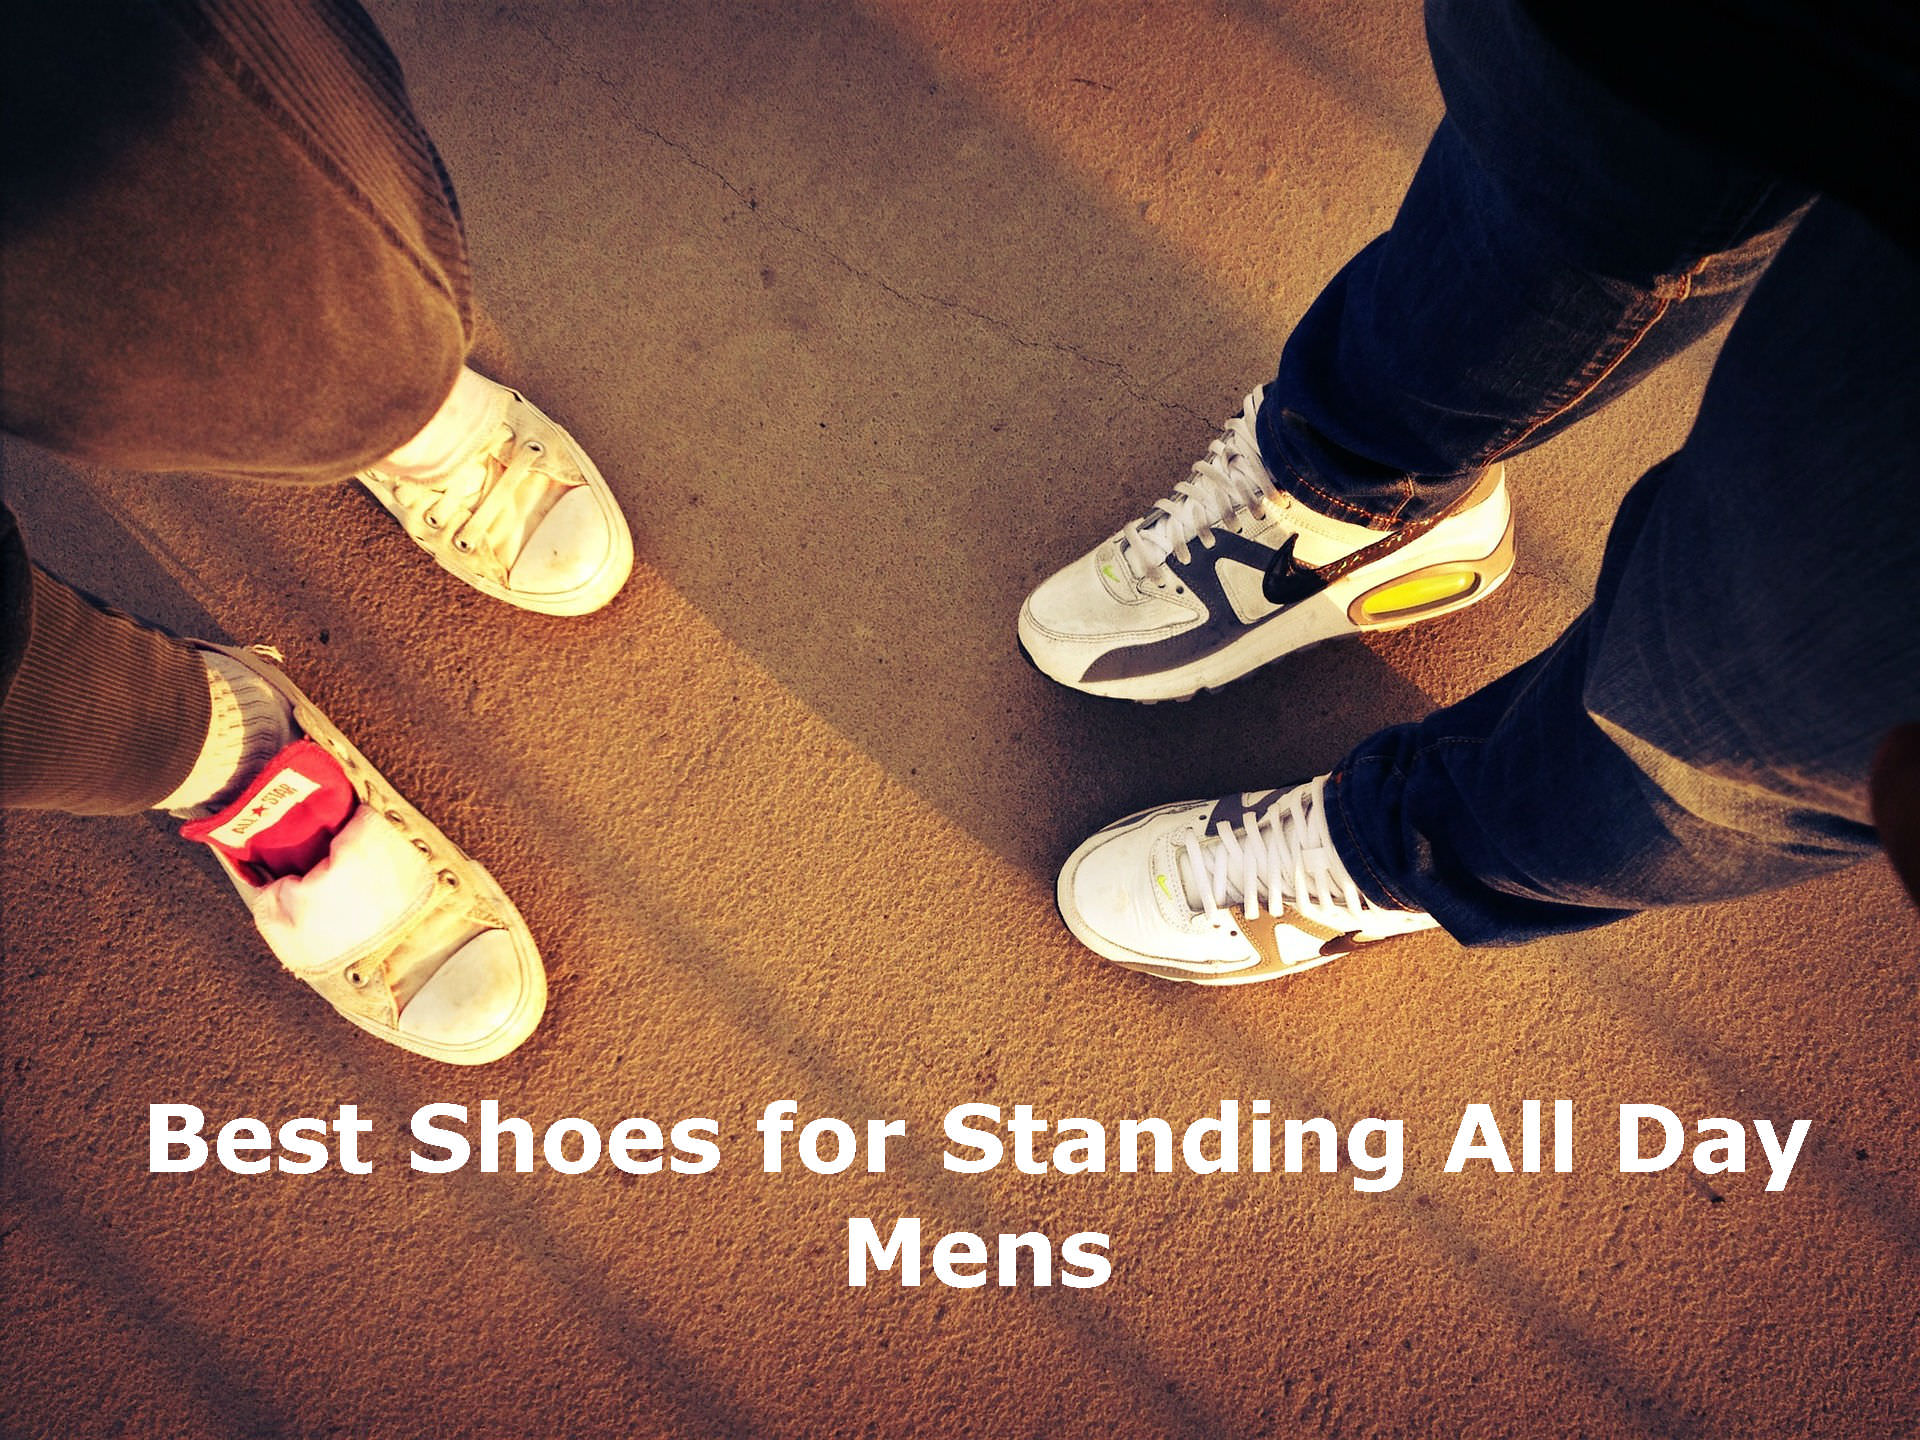 Best Shoes for Standing All Day Men's